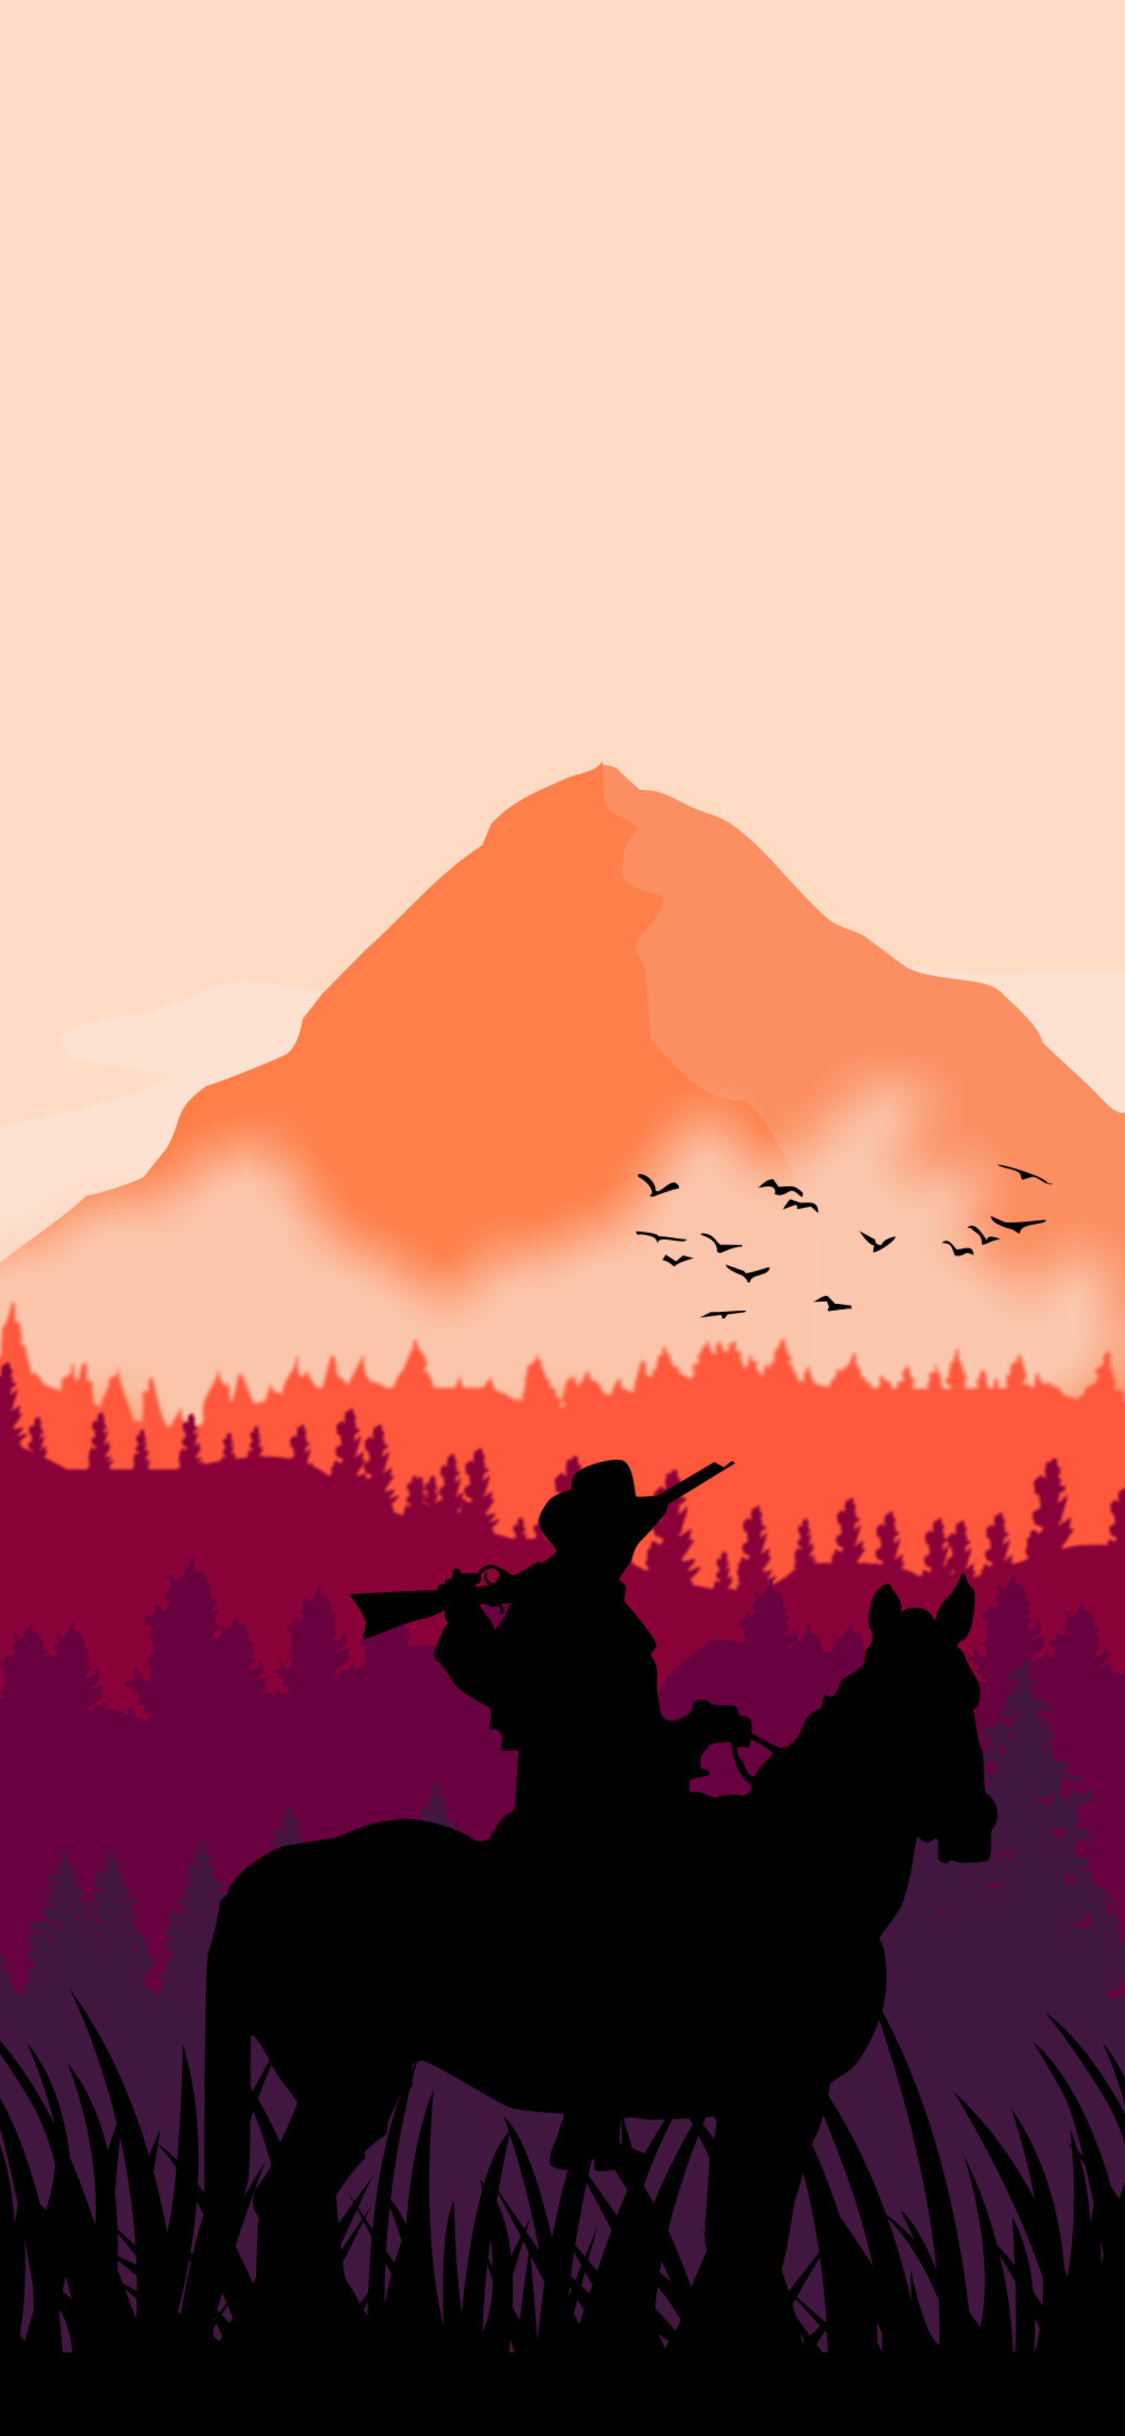 1125x2436 Red Dead Redemption 2 Minimal Art 4k Iphone Xs Iphone 10